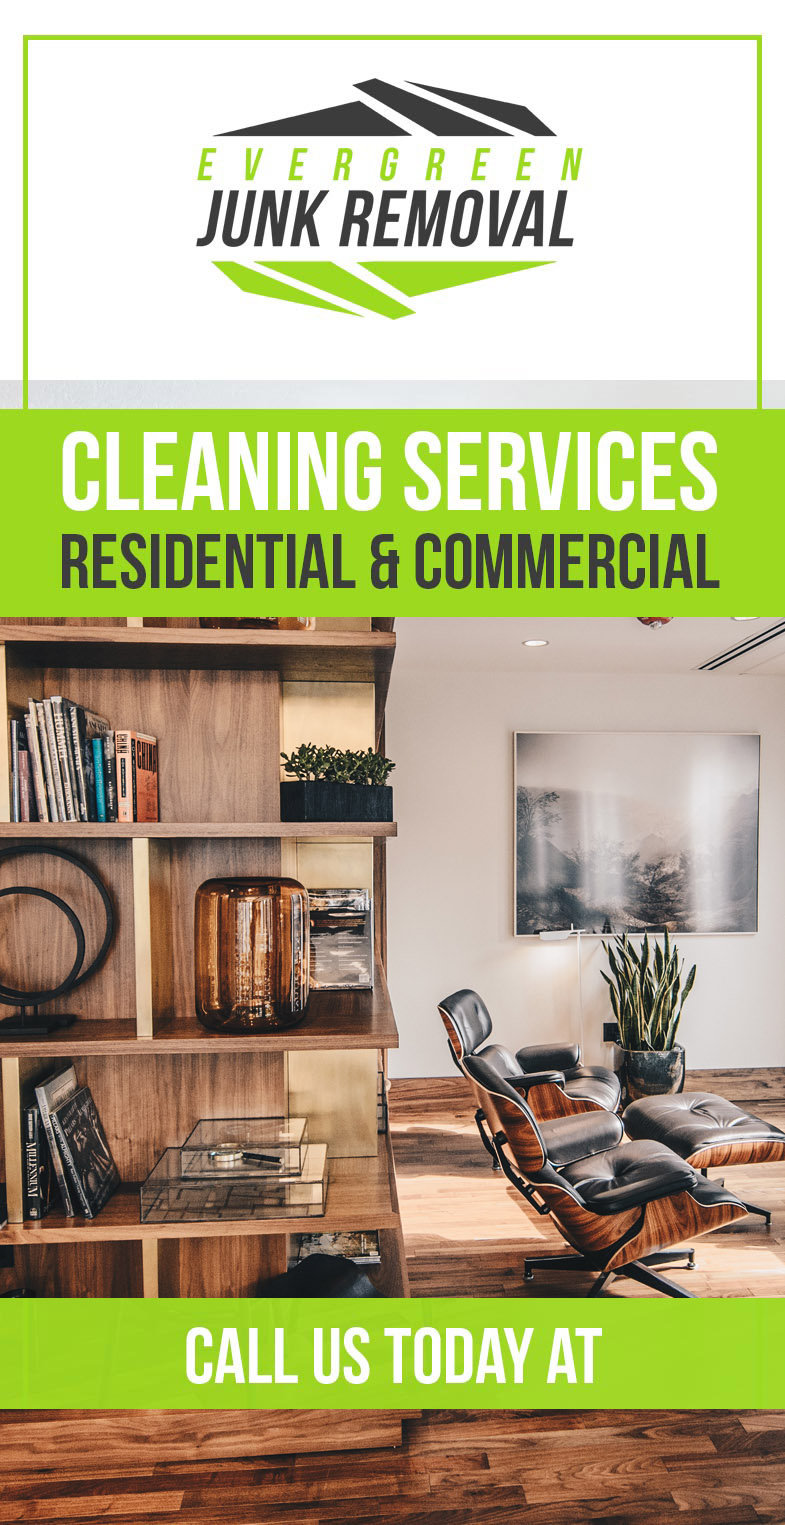 Cooper City Commercial Cleaning